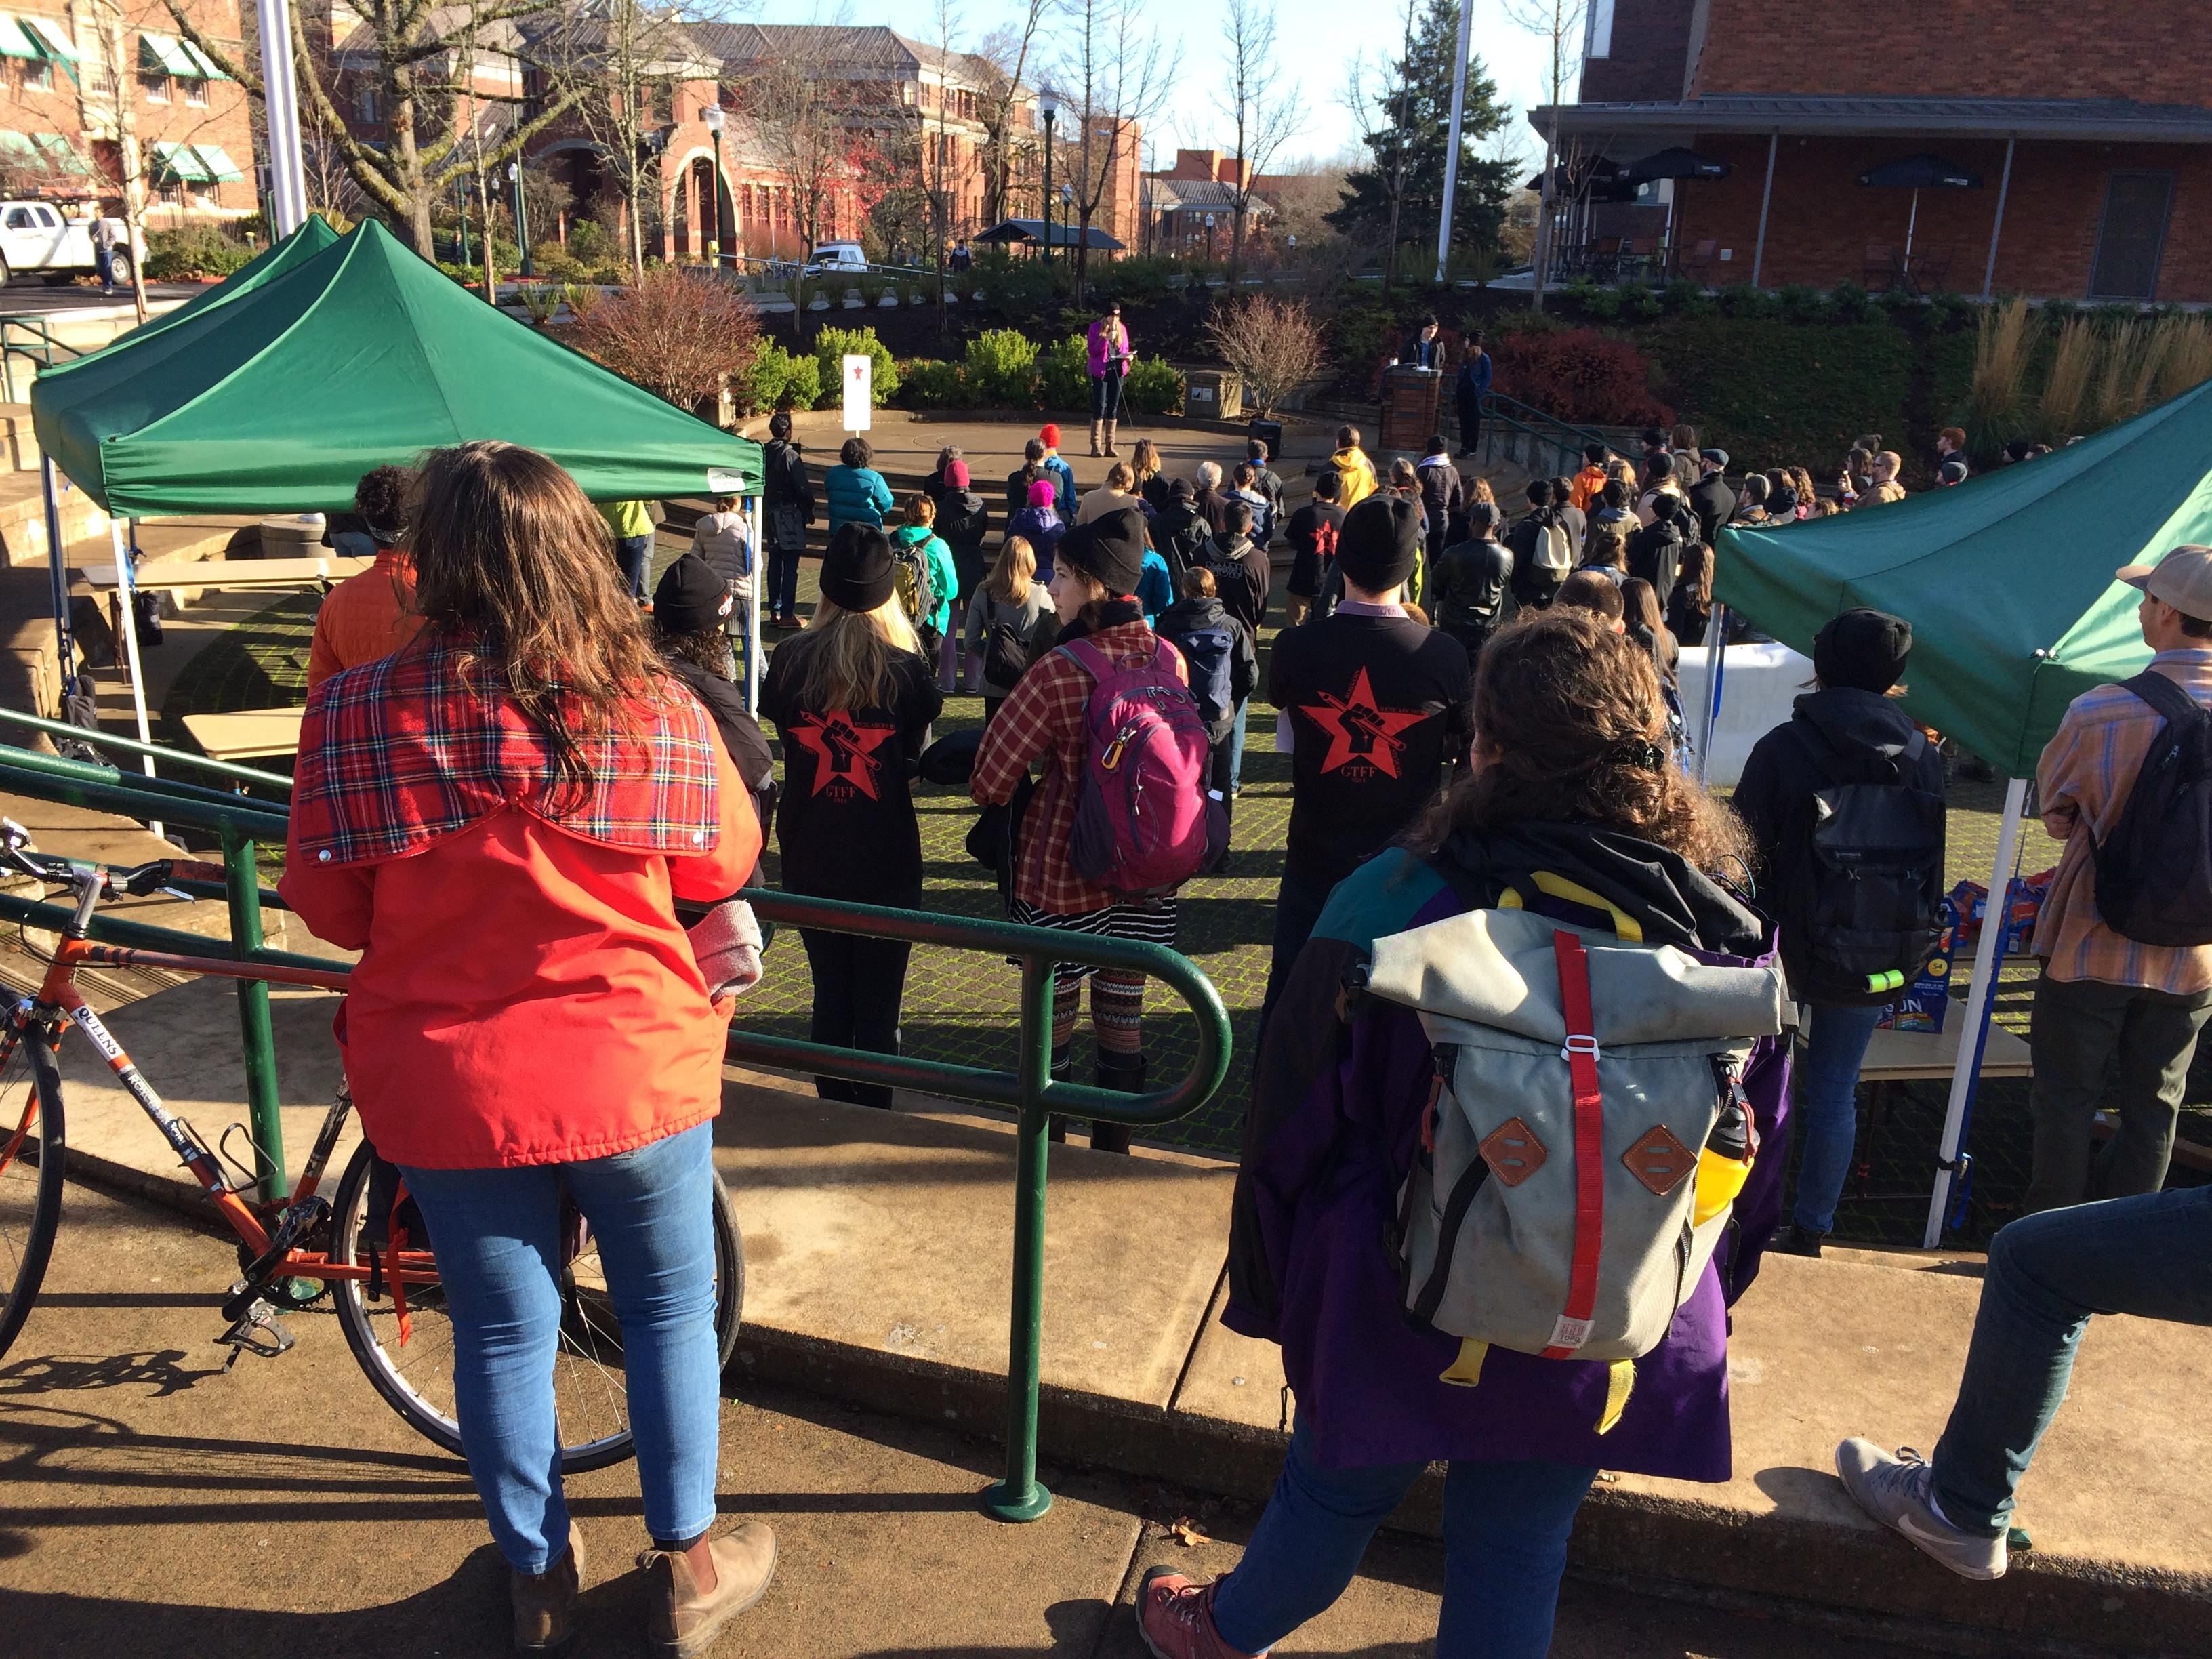 University of Oregon graduate students walked out Wed. as part of a national movement opposing the House-proposed tax plan. Photo by Audrey Weil.